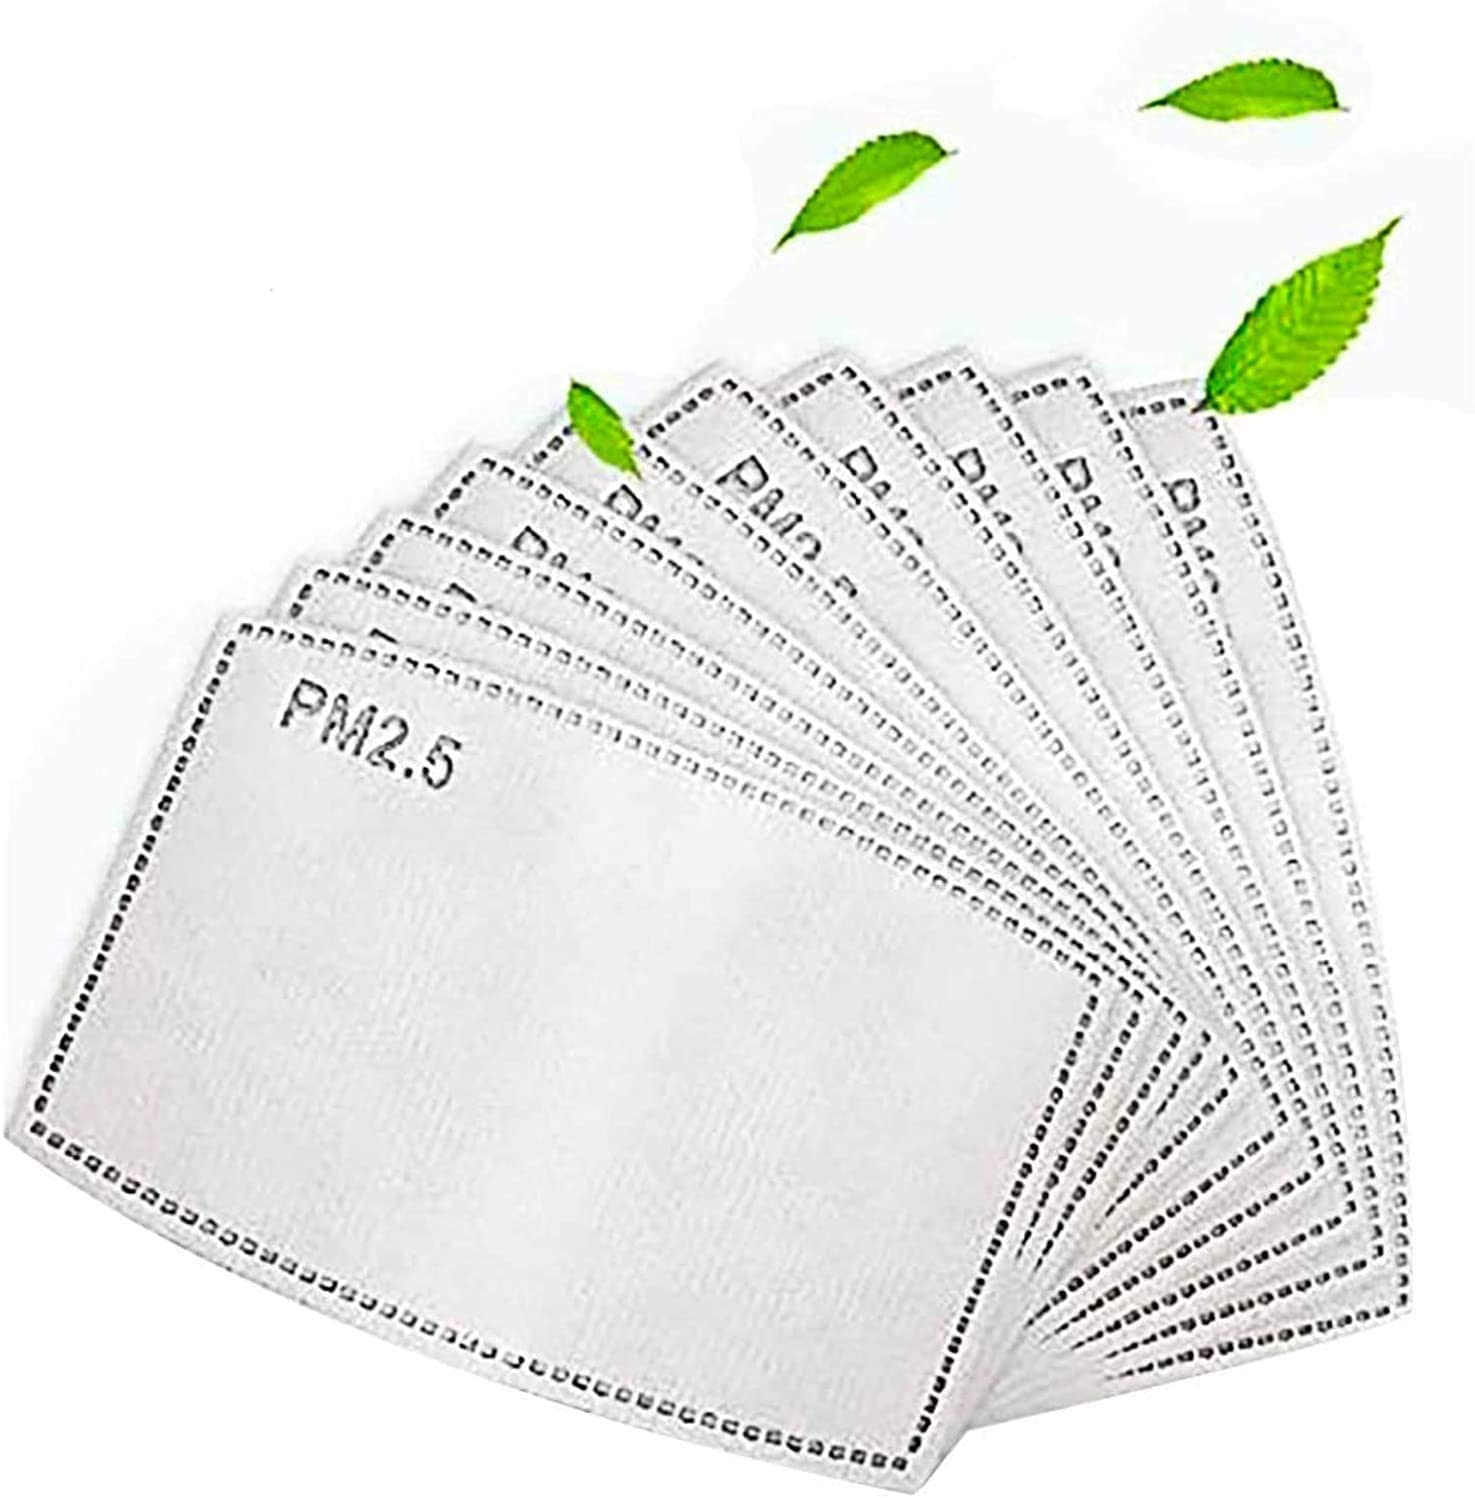 PM2.5 Activated Carbon Filter - 5 Layers Replaceable Anti Haze Filter PM2.5 Replaceable Filters (10PCS)